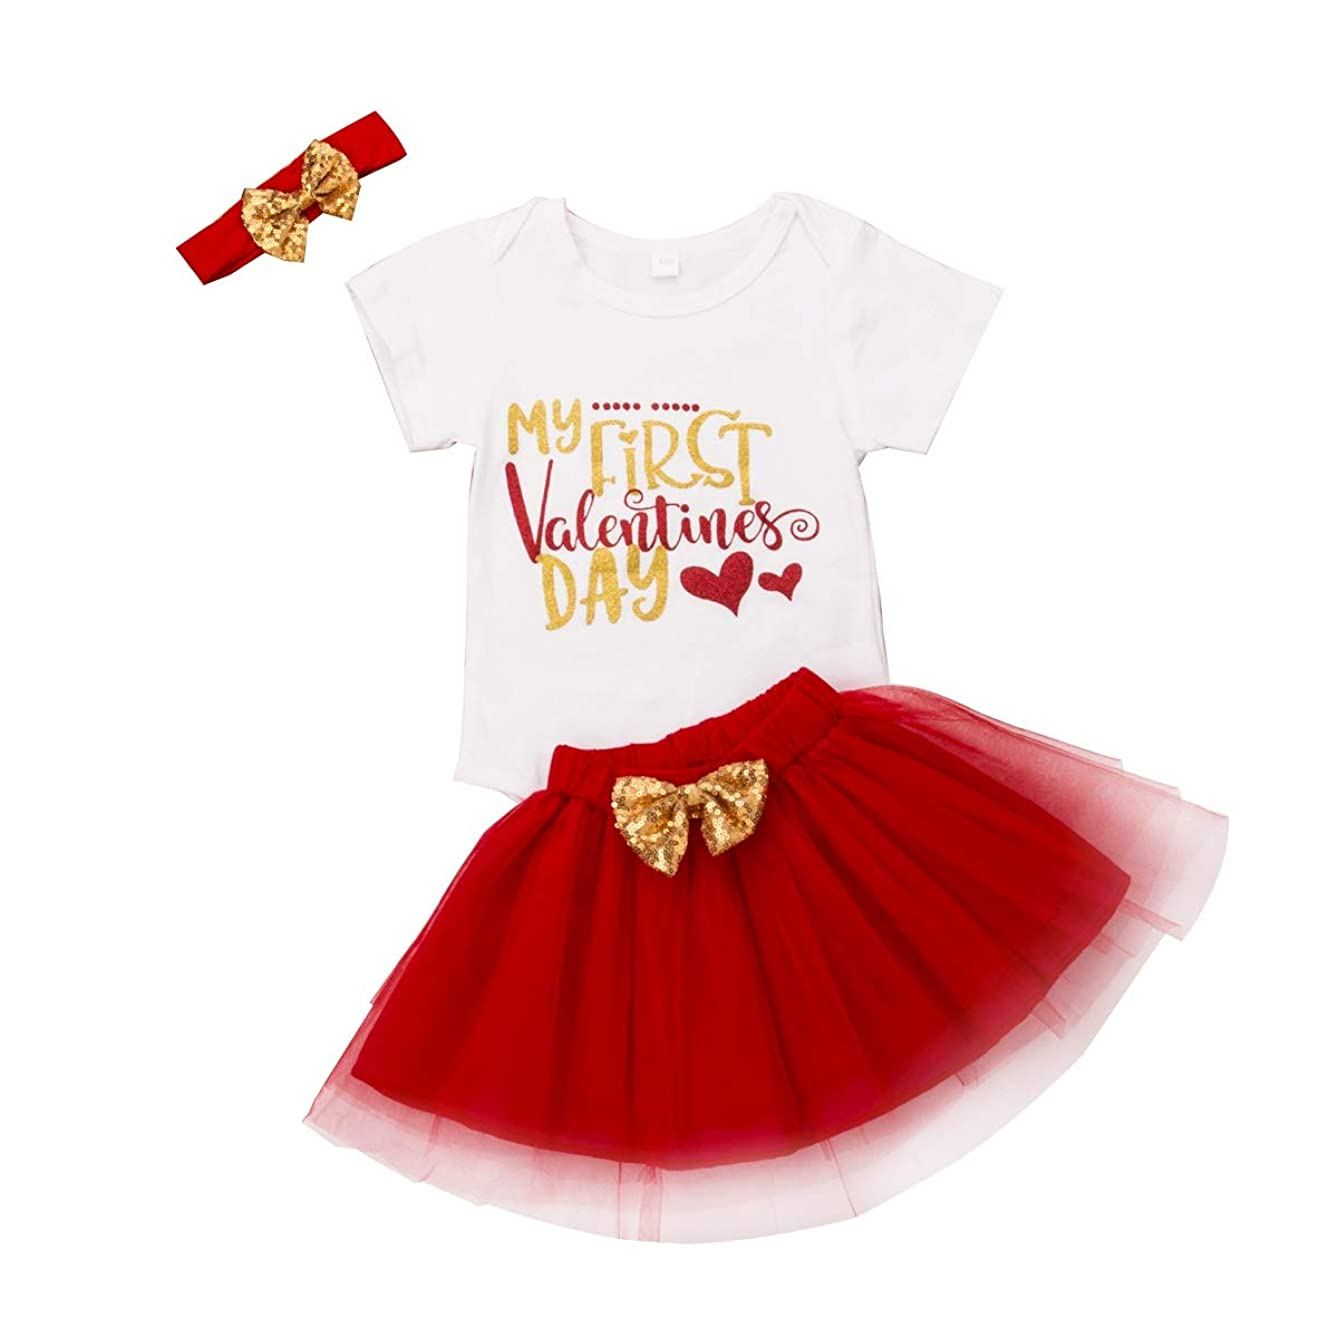 Newborn Infant Baby Girl Clothes My First Valentines Day Romper Tulle Tutu Skirt Headband Outfit Clothing Set